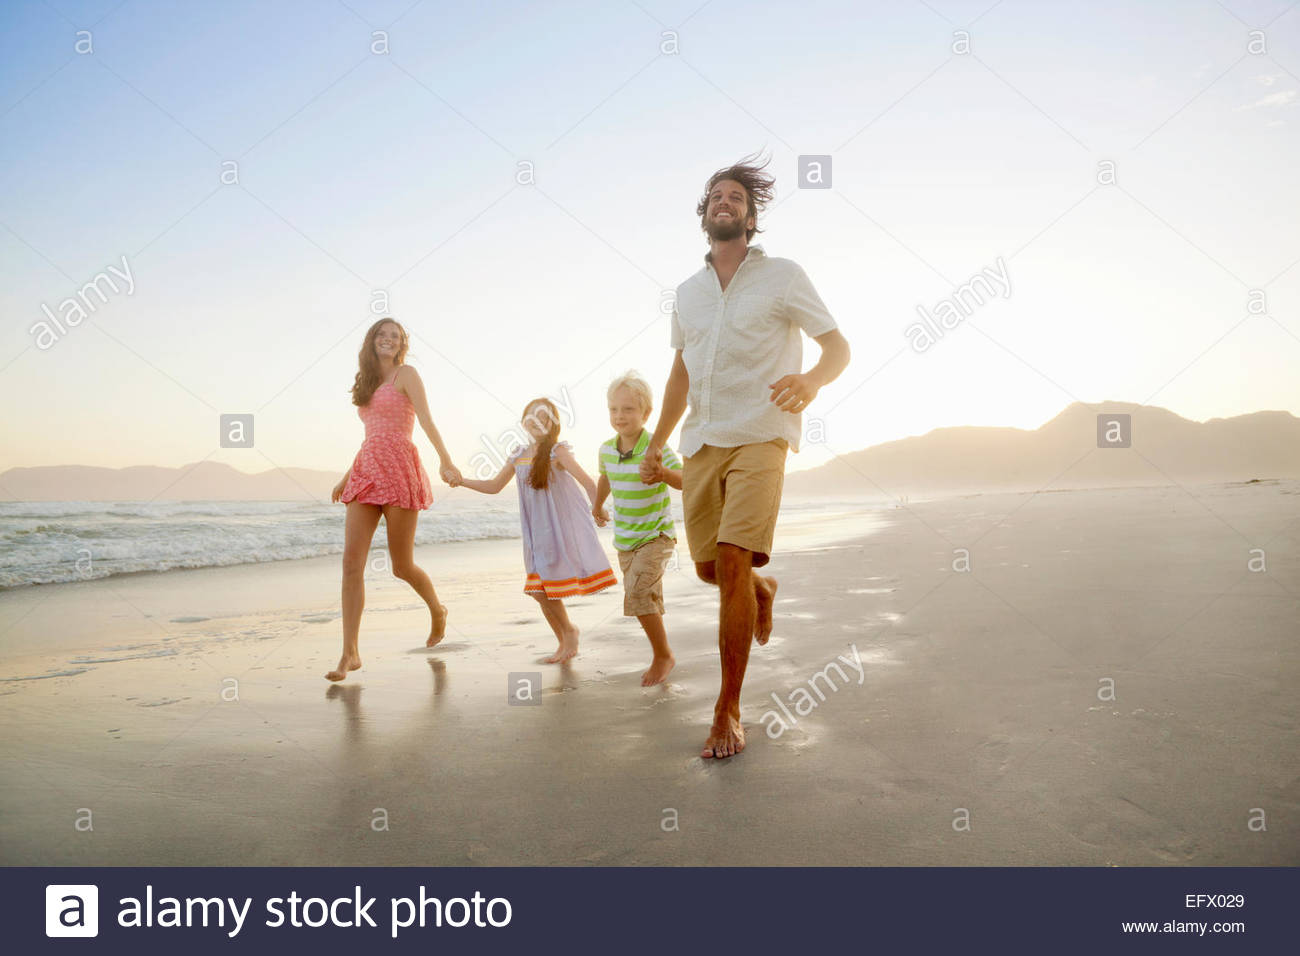 Happy family, holding hands, running on sunny beach - Stock Image